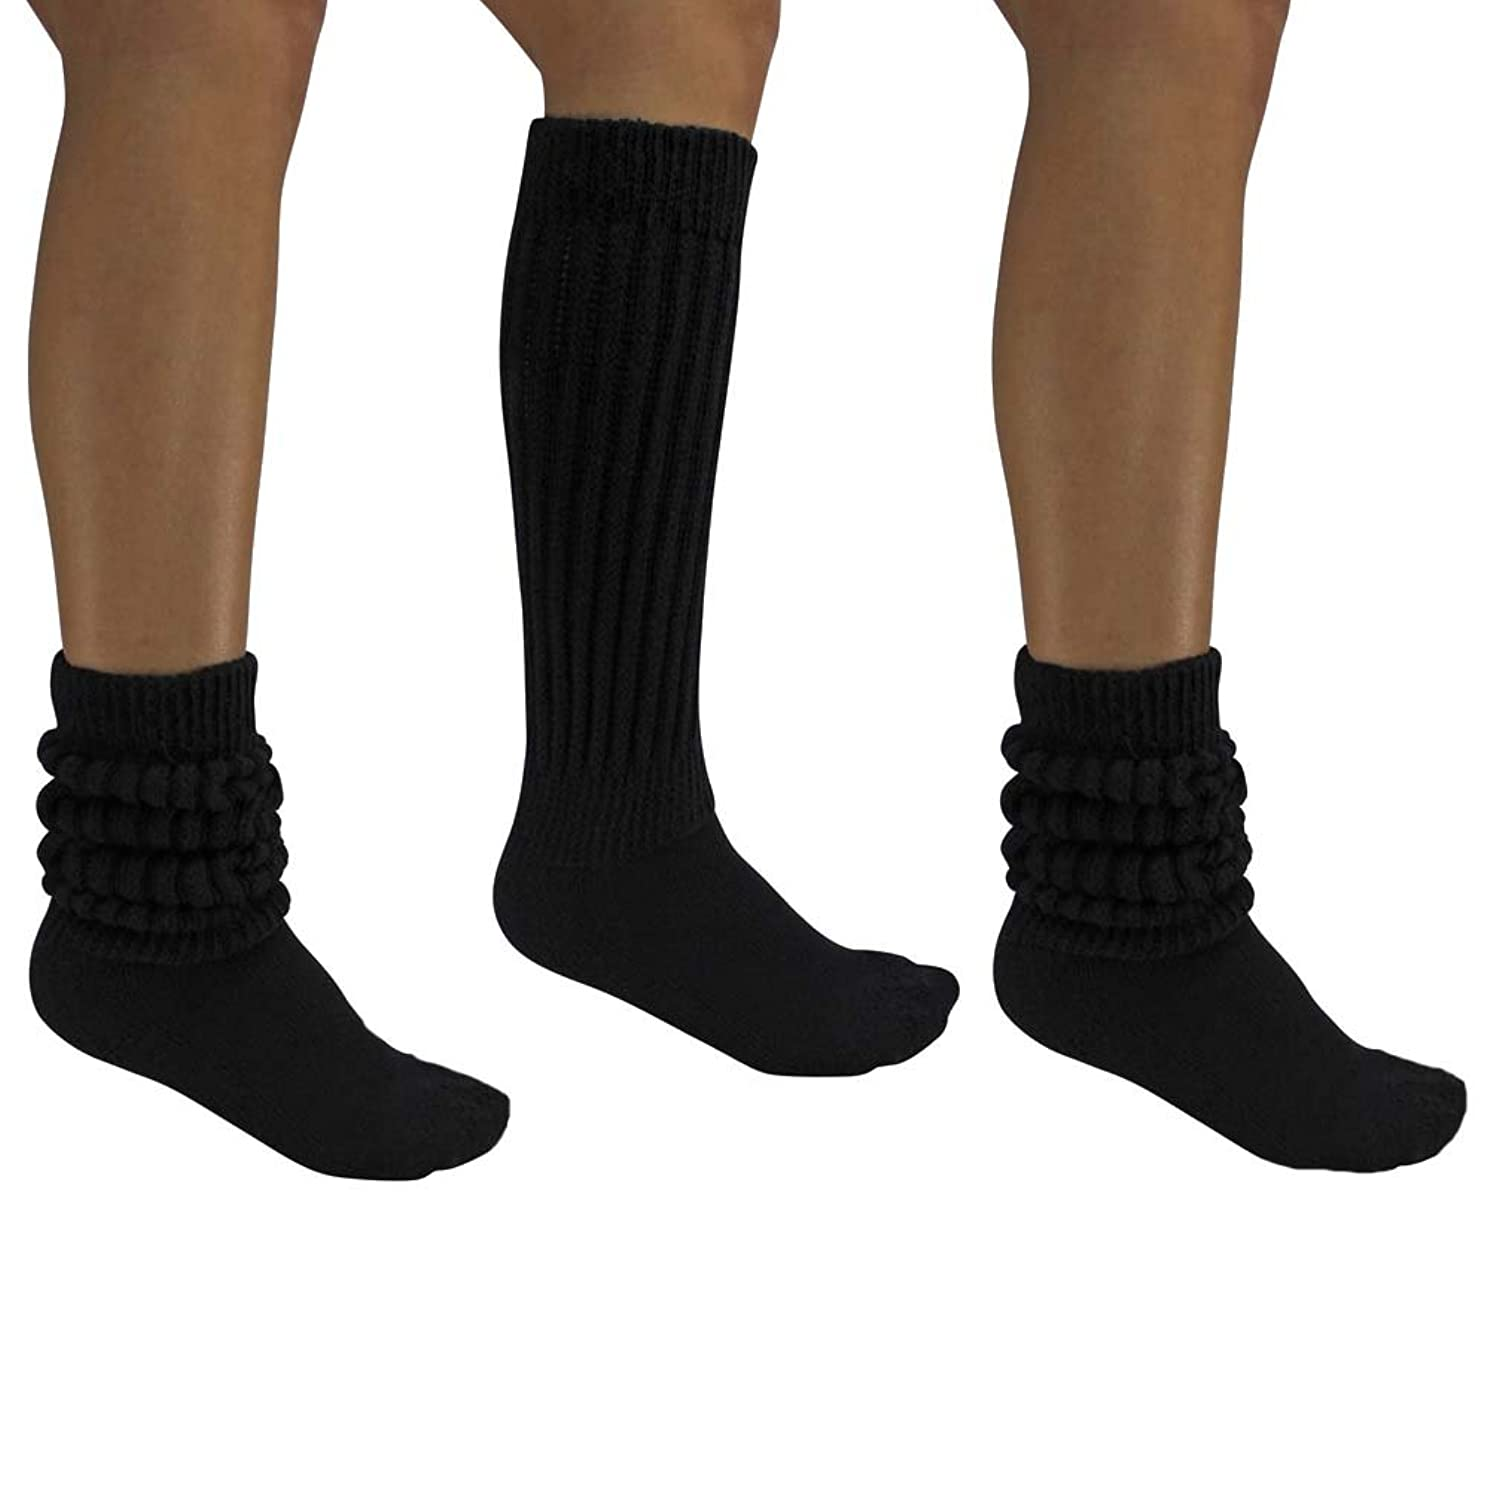 all cotton black 3 pack extra heavy super slouch socks at amazon